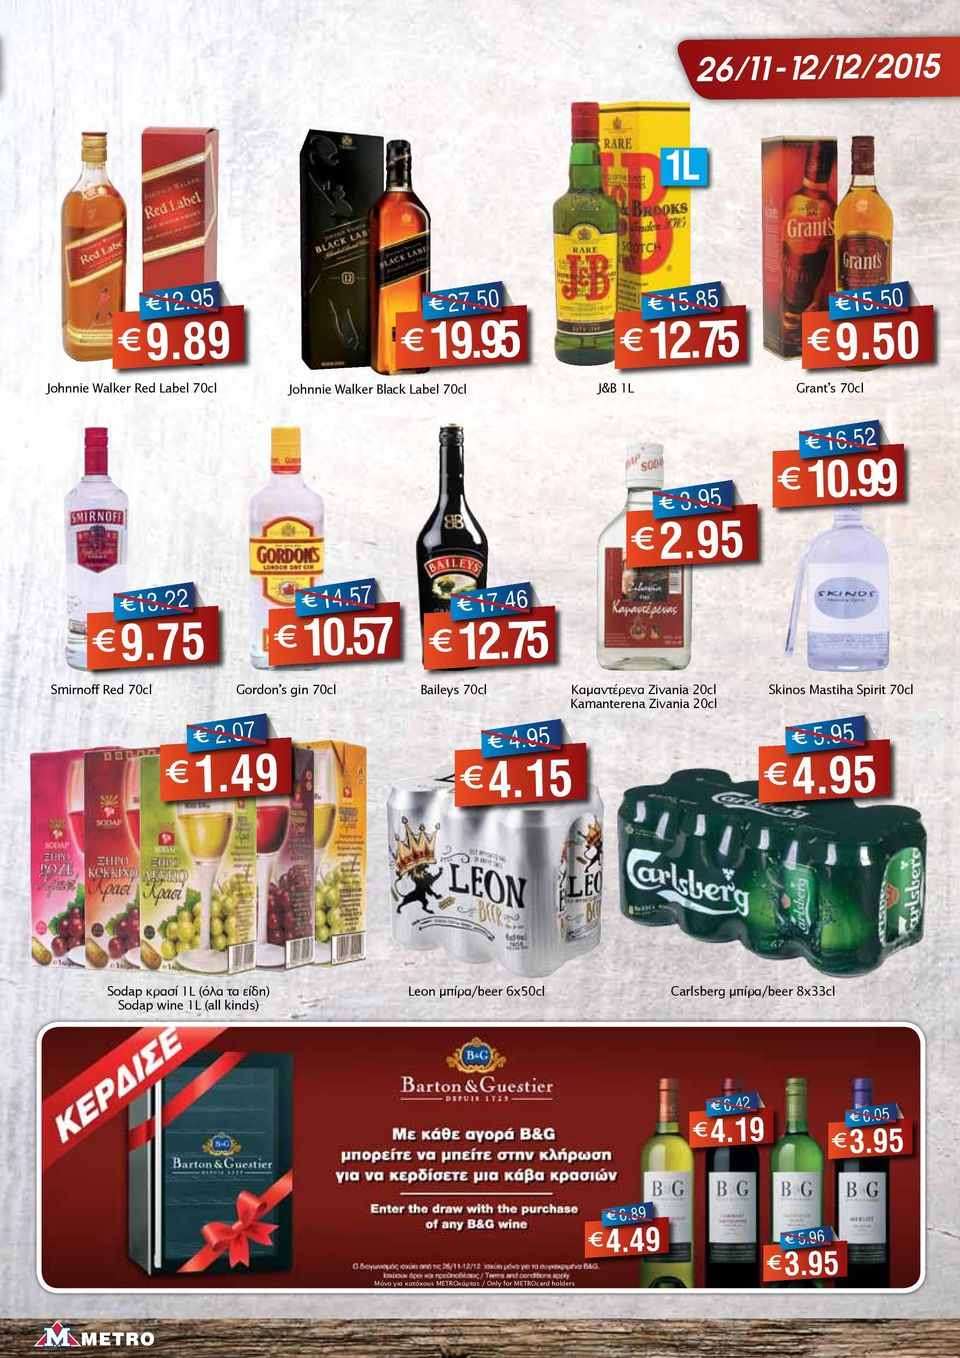 75 Smirnoff Red 70cl Gordon s gin 70cl Baileys 70cl 2.07 1.49 14.57 10.57 17.46 12.75 4.95 4.15 3.95 2.